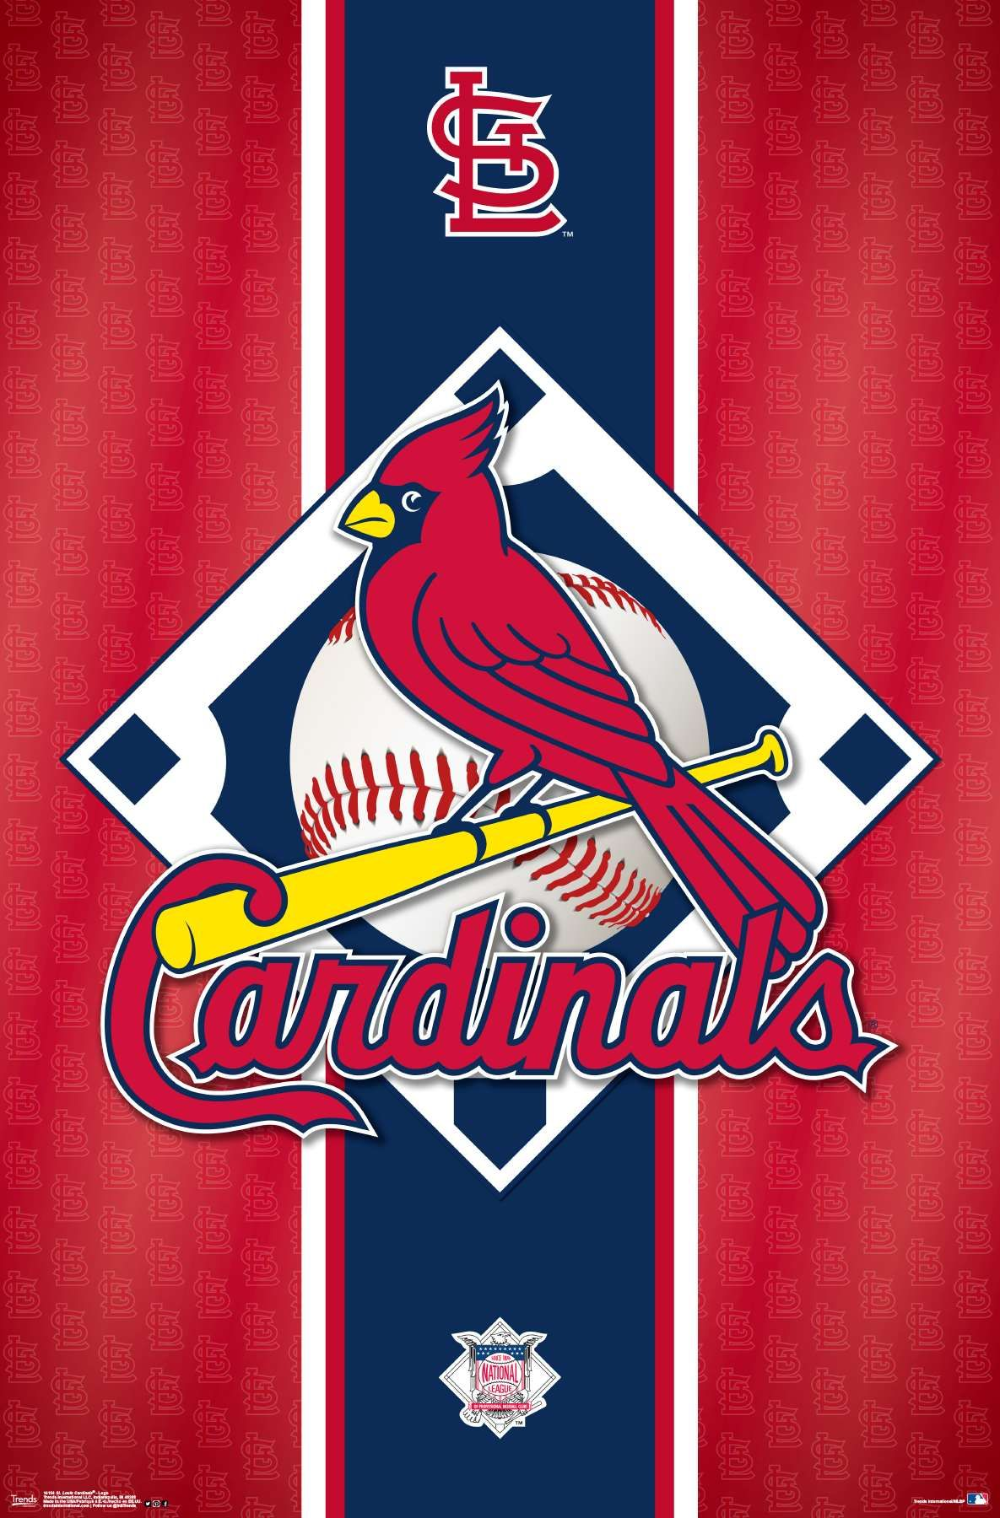 Mlb St Louis Cardinals Logo In 2020 St Louis Cardinals Baseball St Louis Cardinals St Louis Cardinals Poster